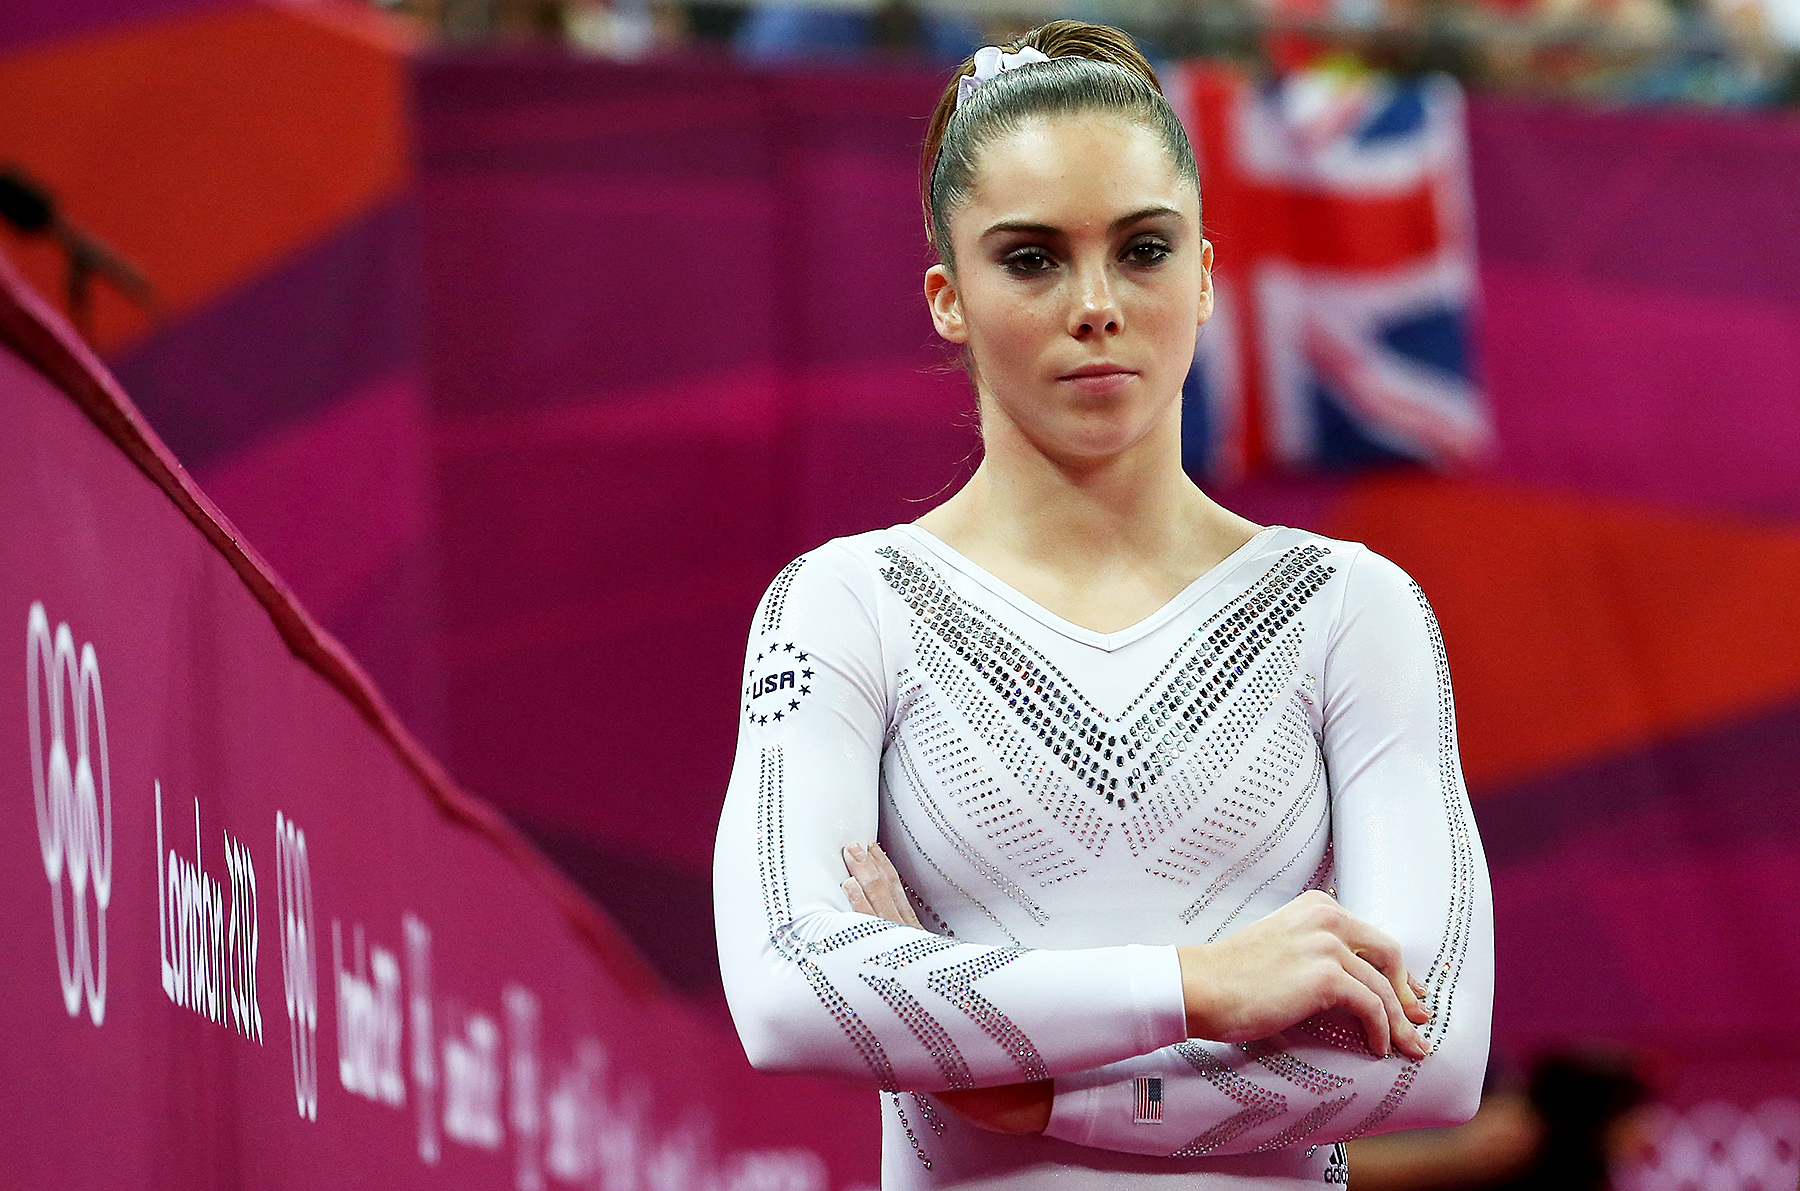 USA Gymnastics Made a Deal With McKayla Maroney to Stay Quiet About Larry Nassar Abuse